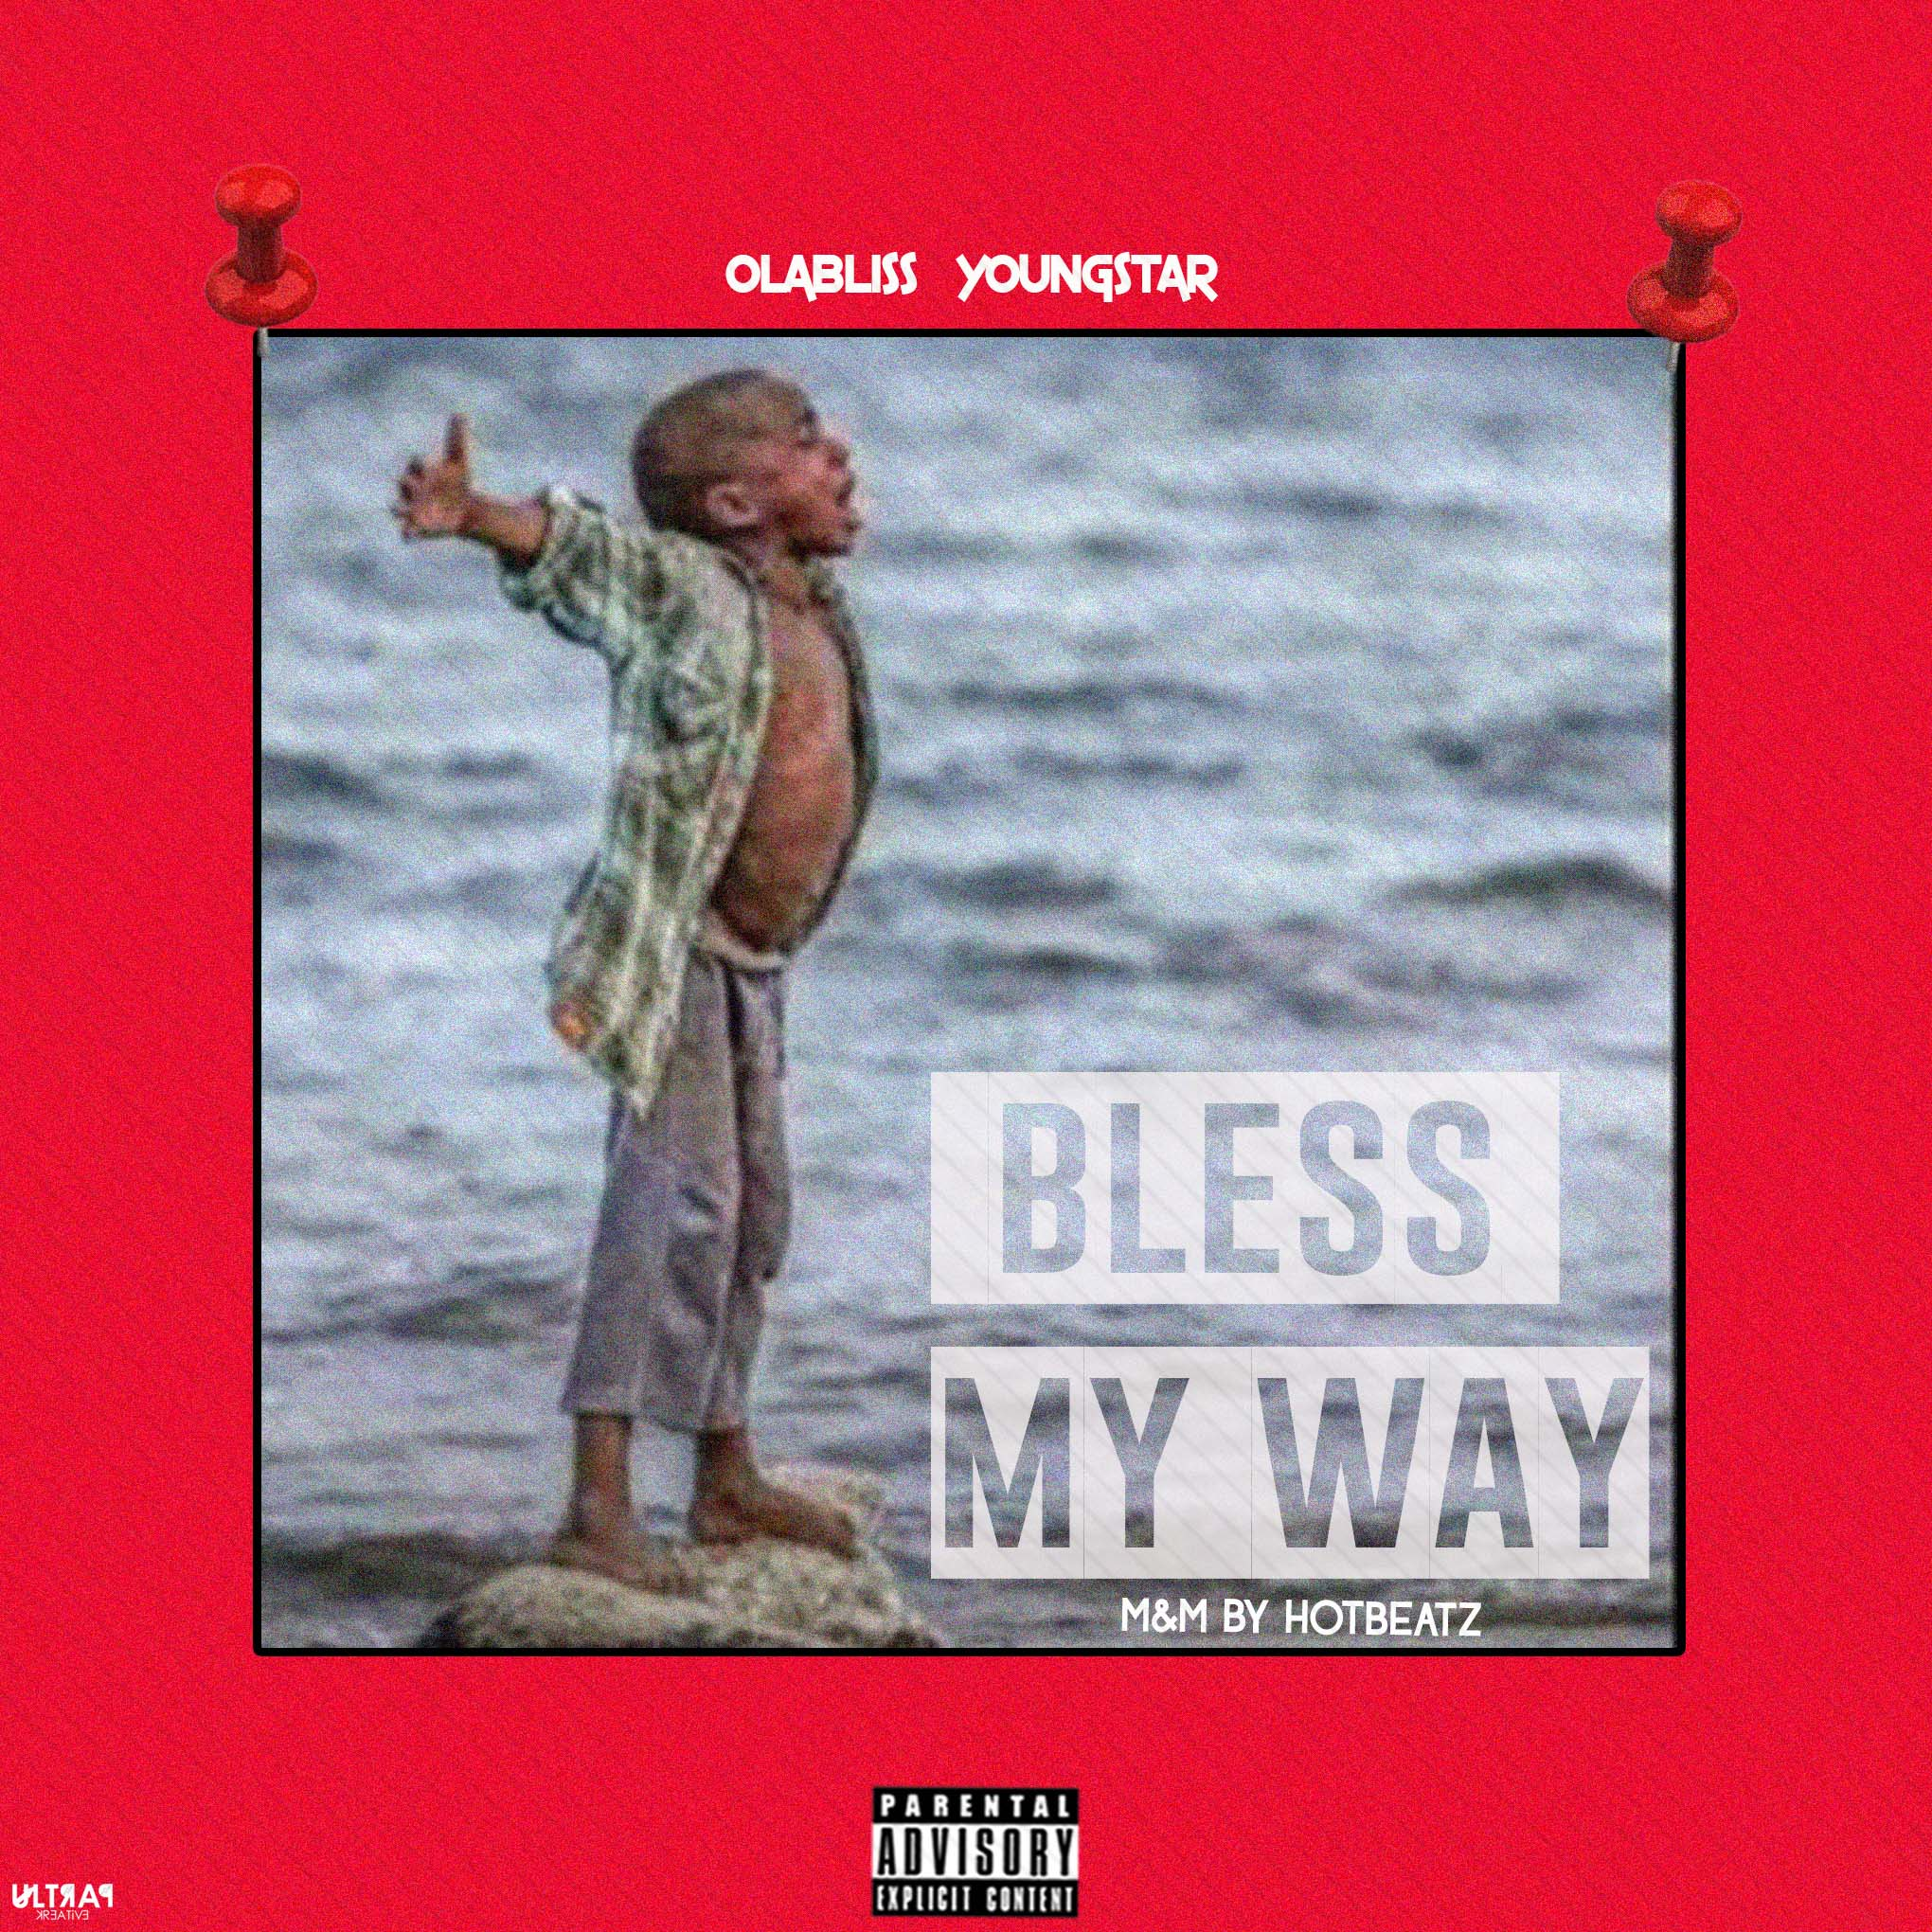 Olabliss Youngstar - Bless My Way